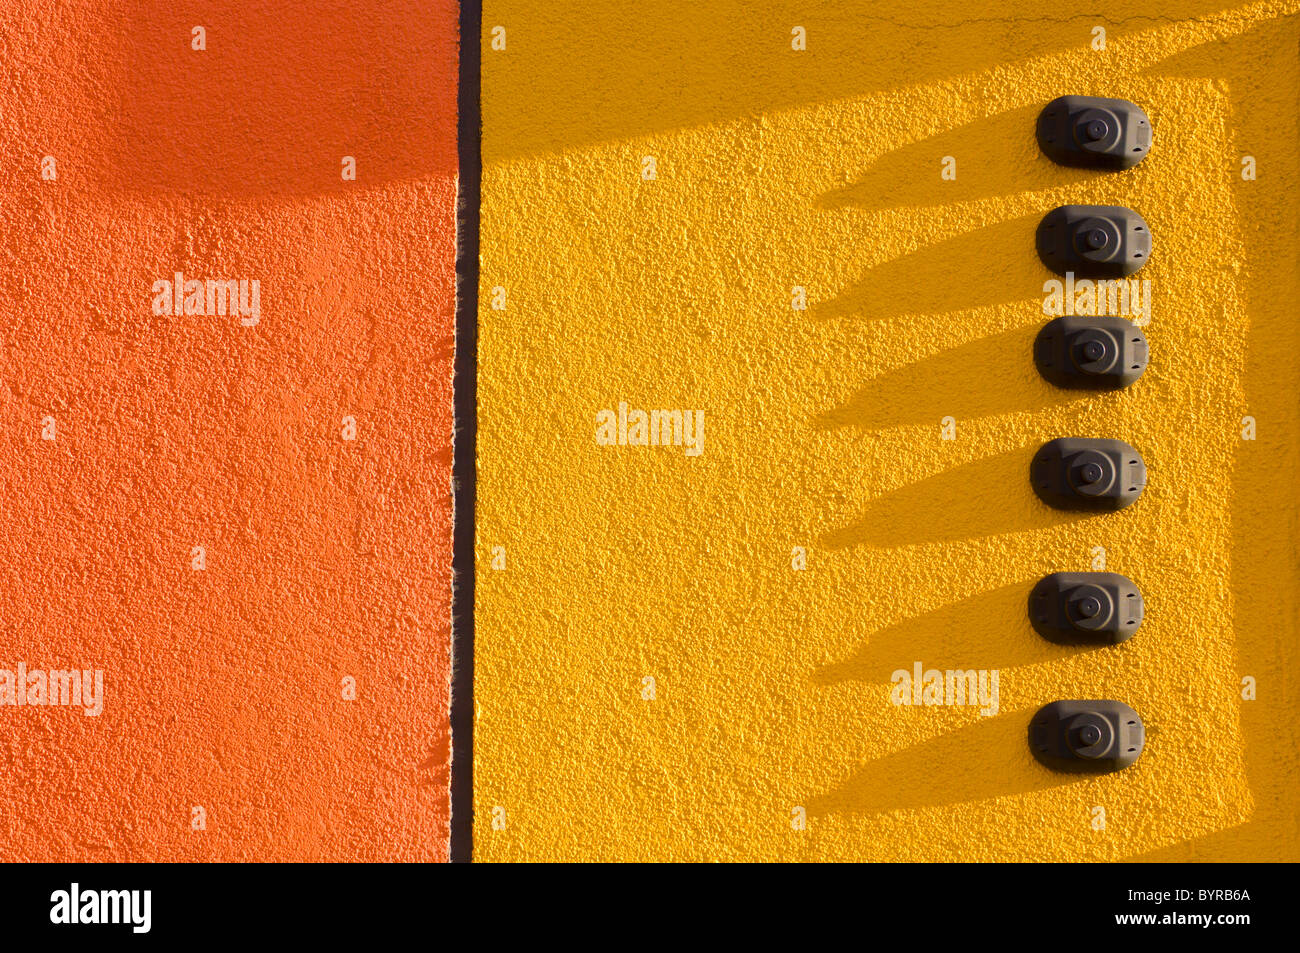 Mur en stuc orange et jaune avec 6 sonnette ; st. albert, Alberta, Canada Photo Stock